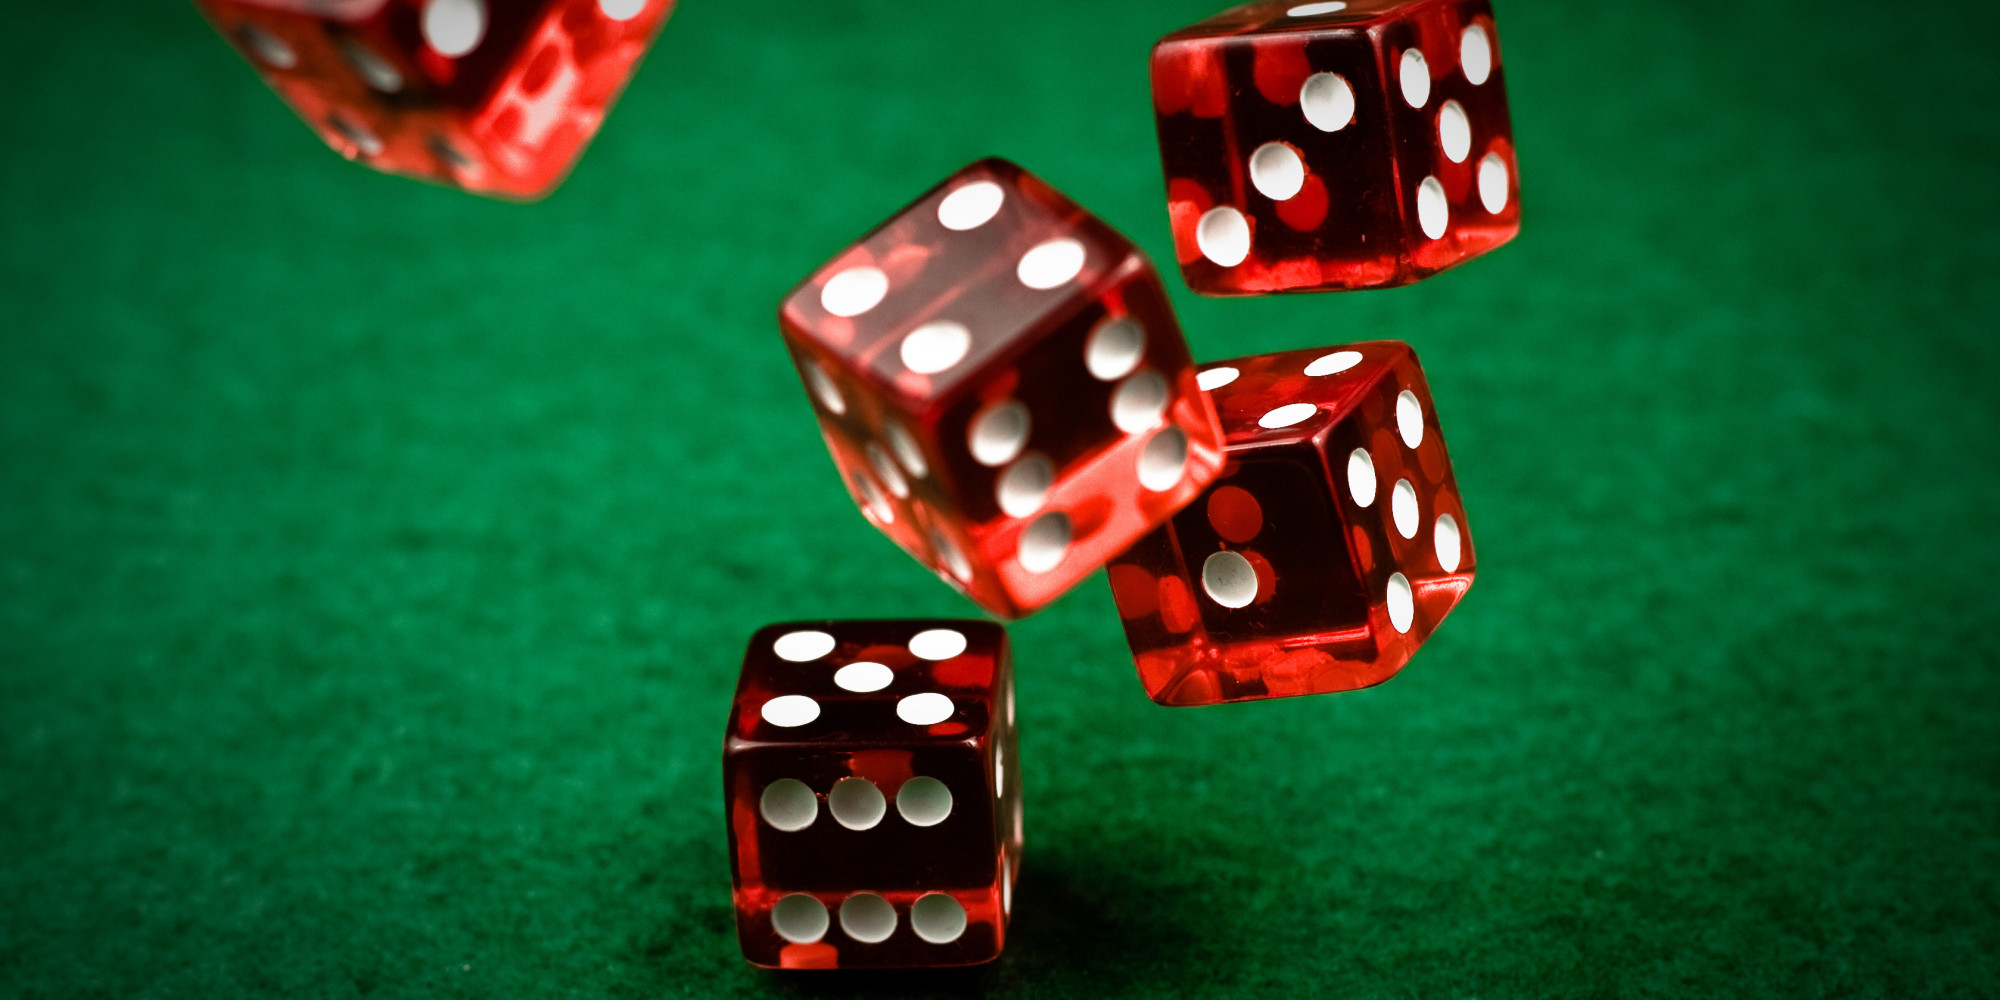 Online Poker Rooms Tips On Working With The Lobby - Gambling